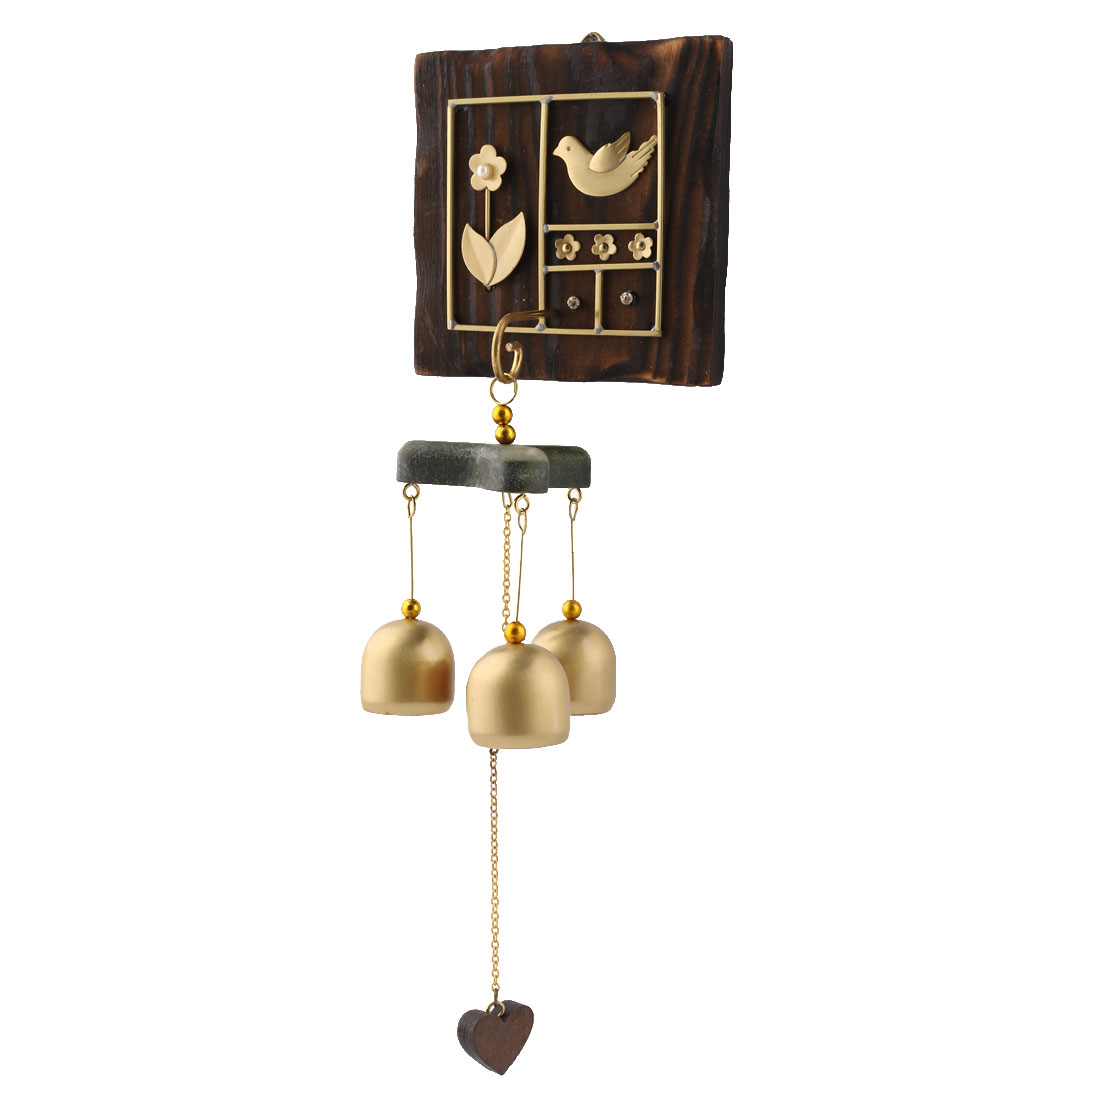 Home Copper Retro Style Self Adhesive Hook Hanging Decor Wind Bell Chime Windbell